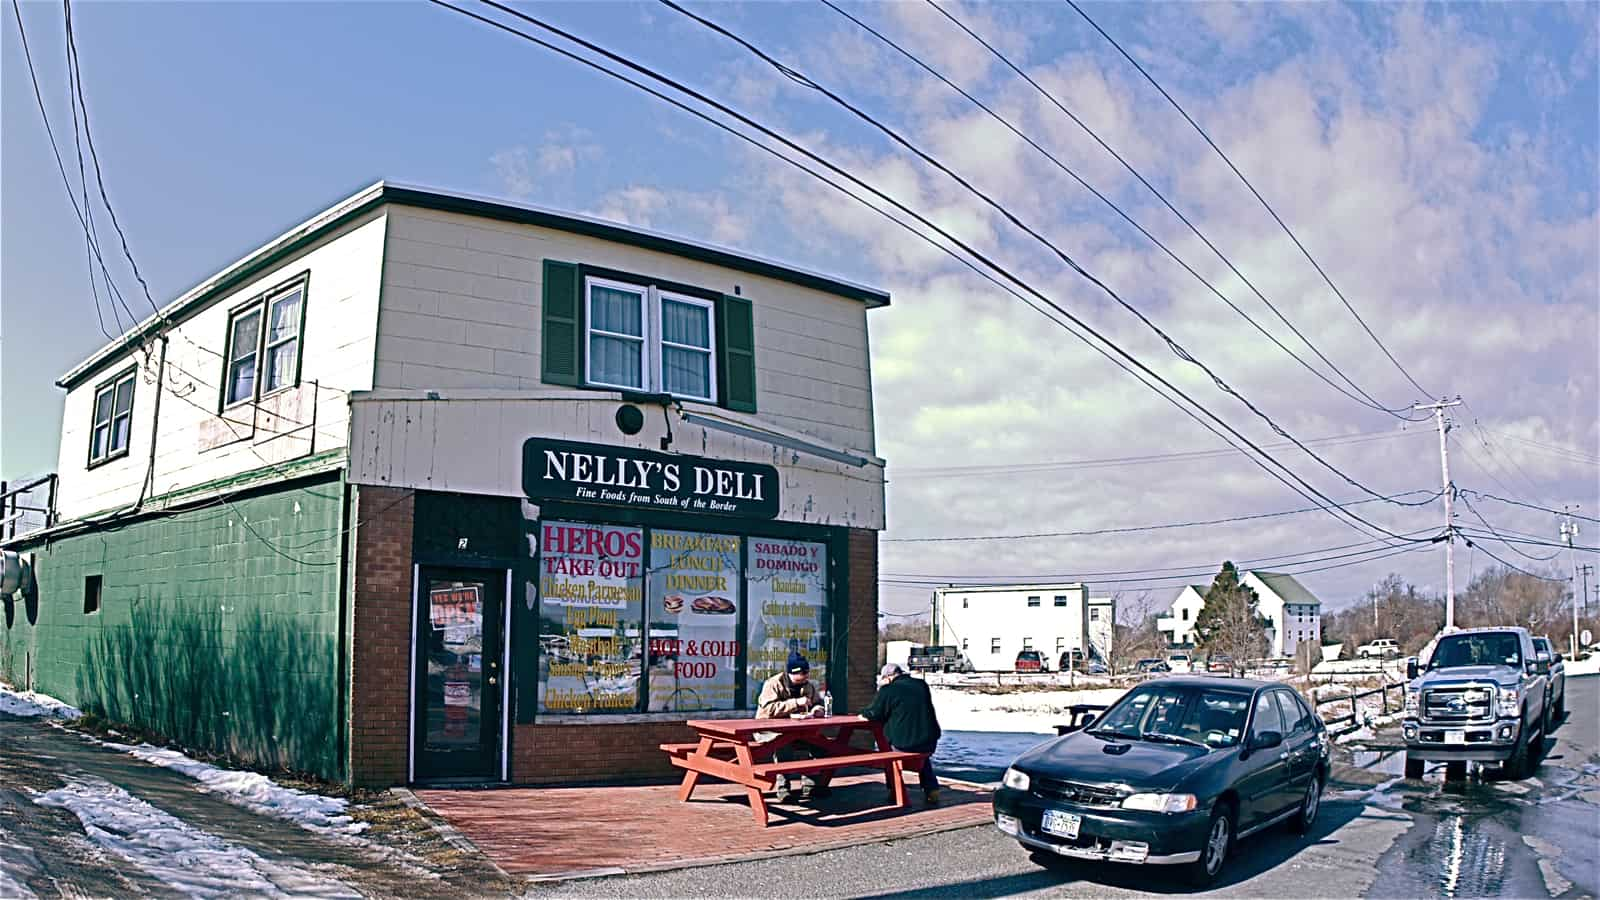 Nelly's Deli, February 12, 2013, Montauk NY, photo by Sailing Montauk